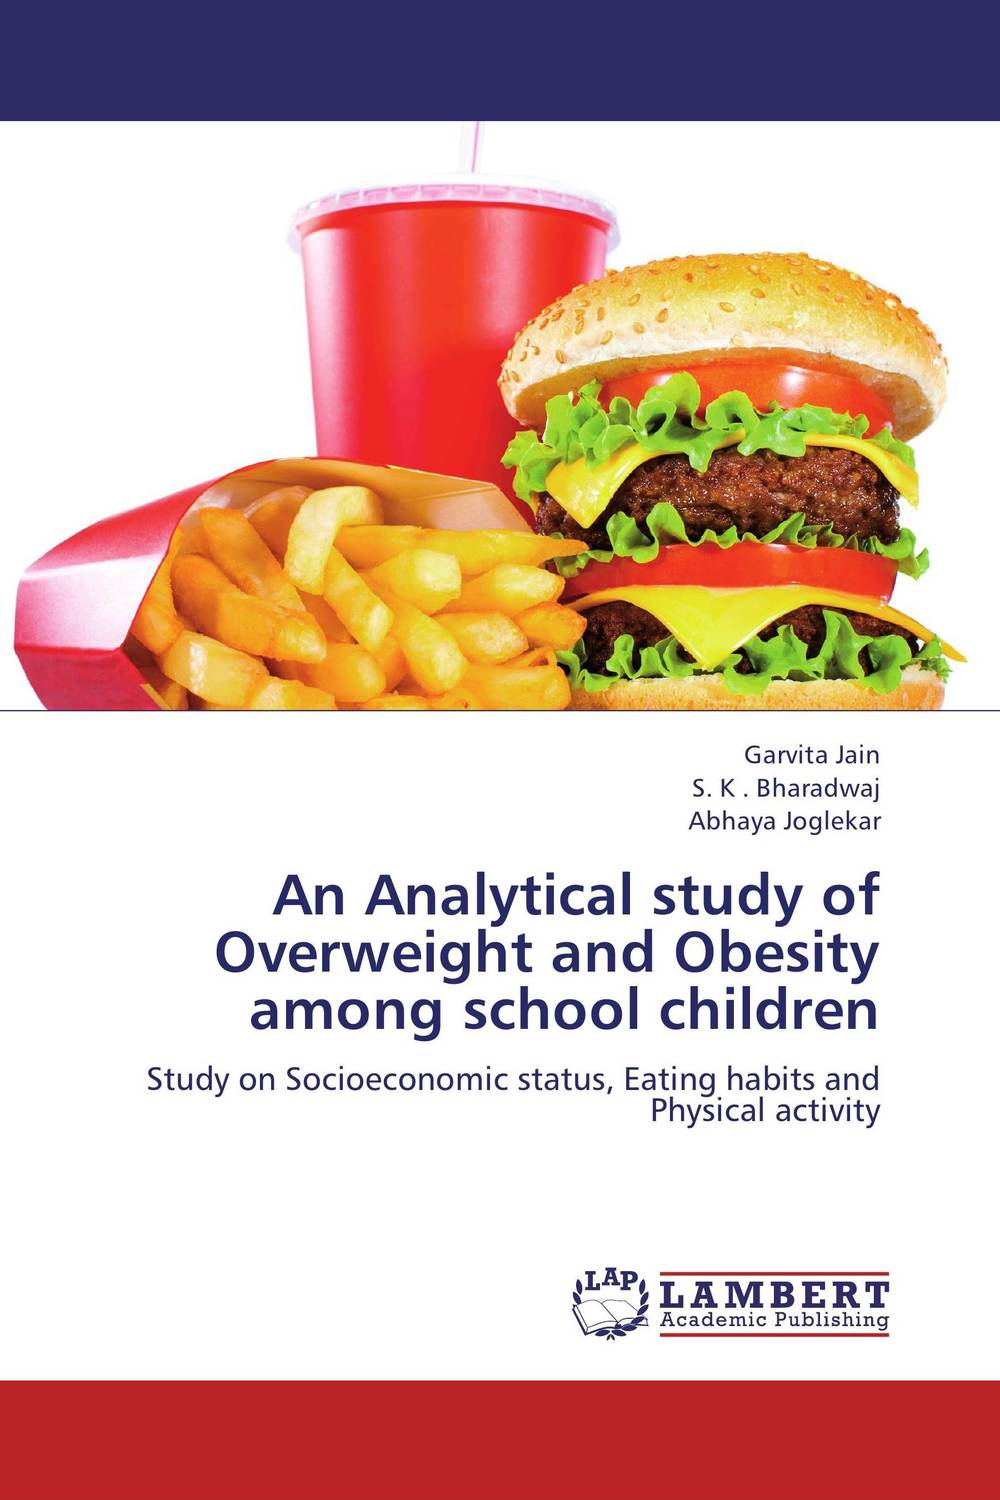 An Analytical study of Overweight and Obesity among school children